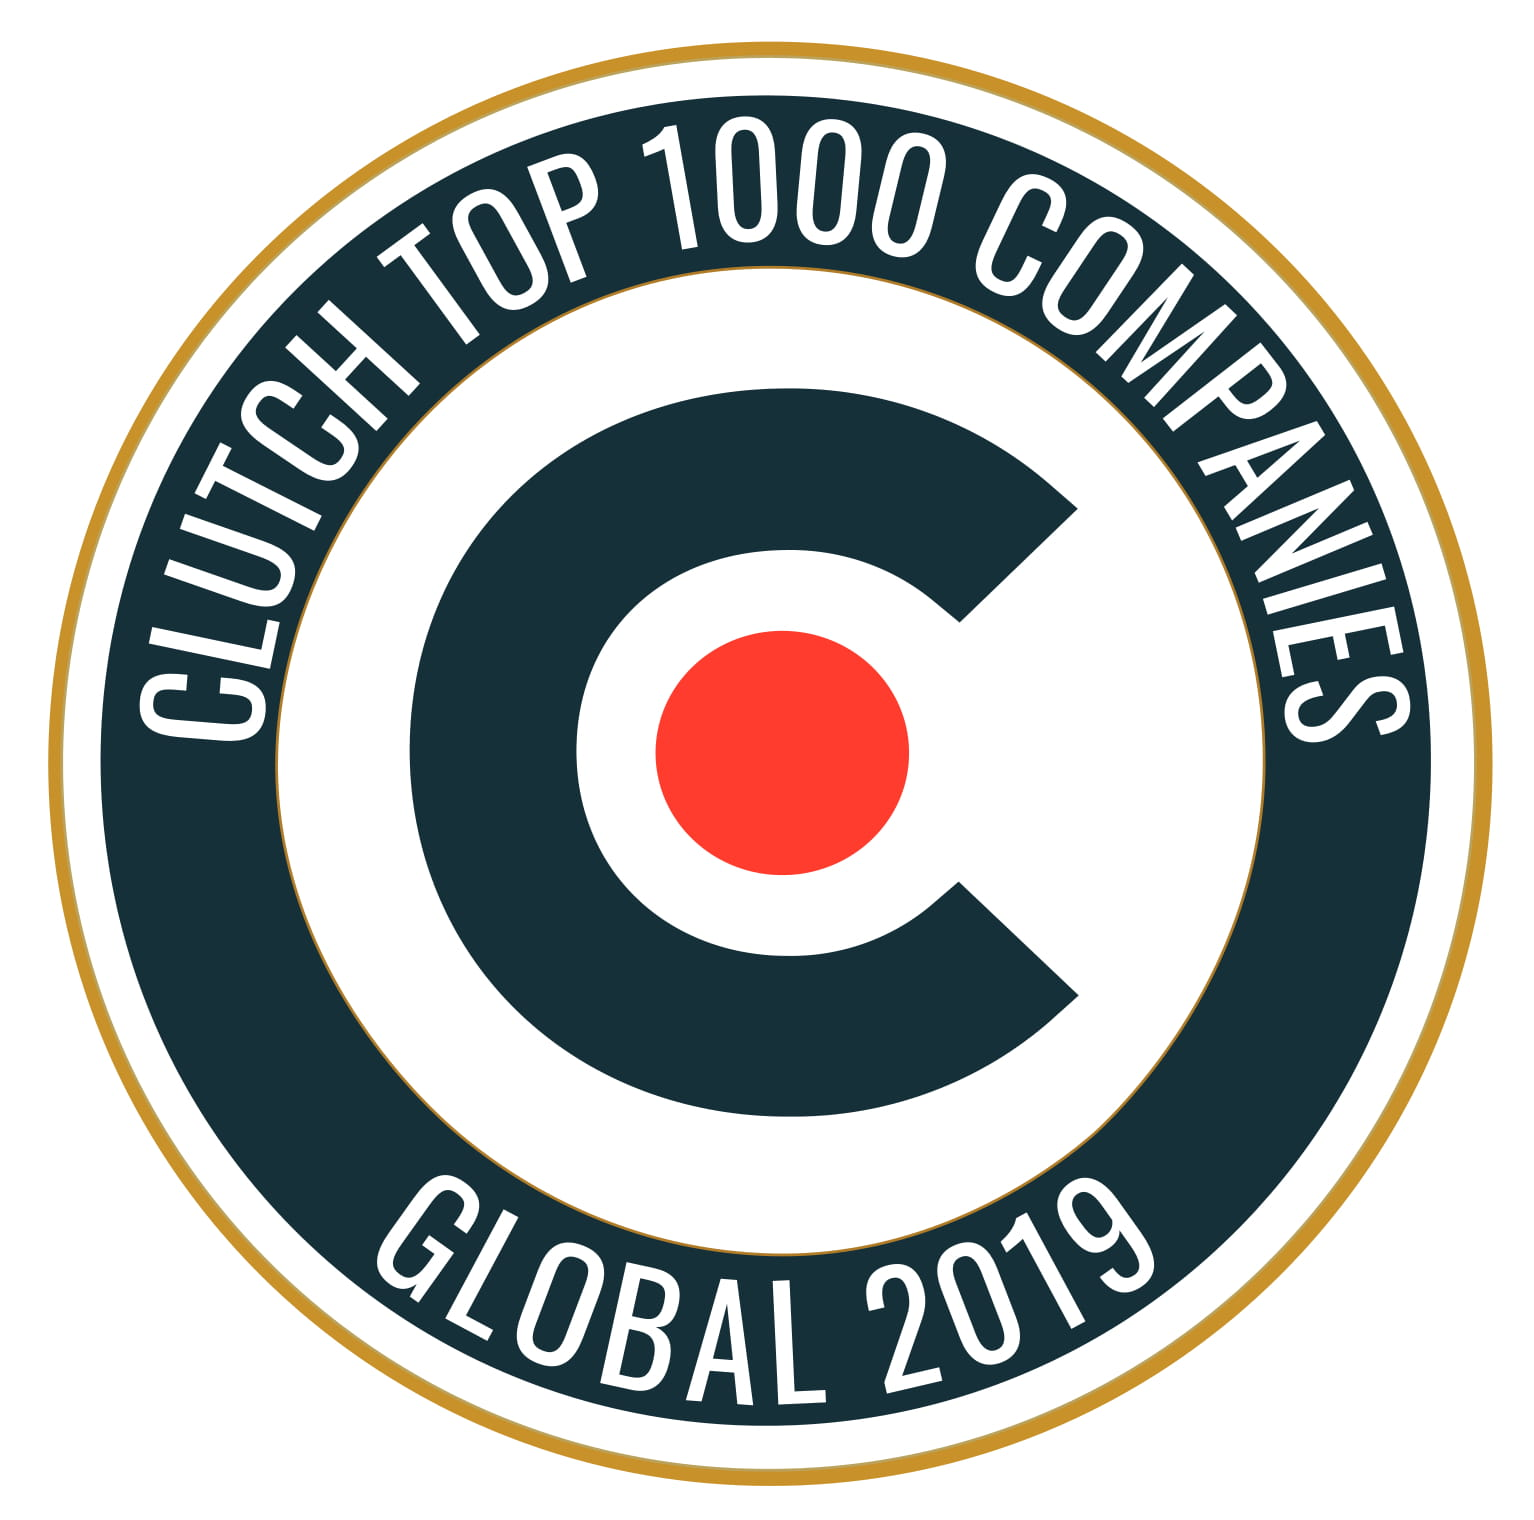 Clutch Recognizes Cubix in its Exclusive 2019 Clutch 1000 List